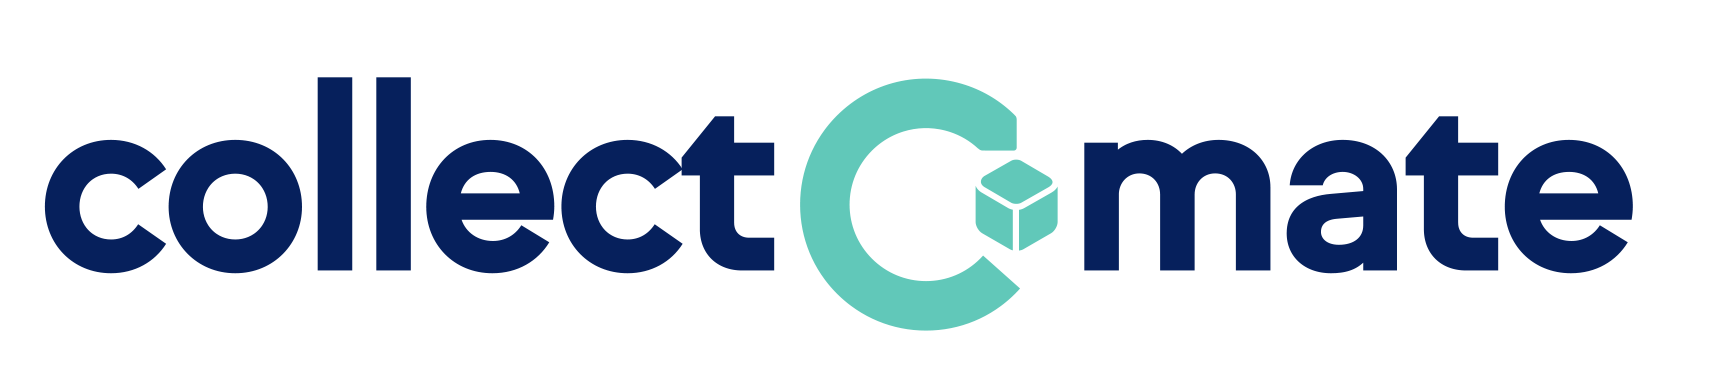 Collectomate_logo.png